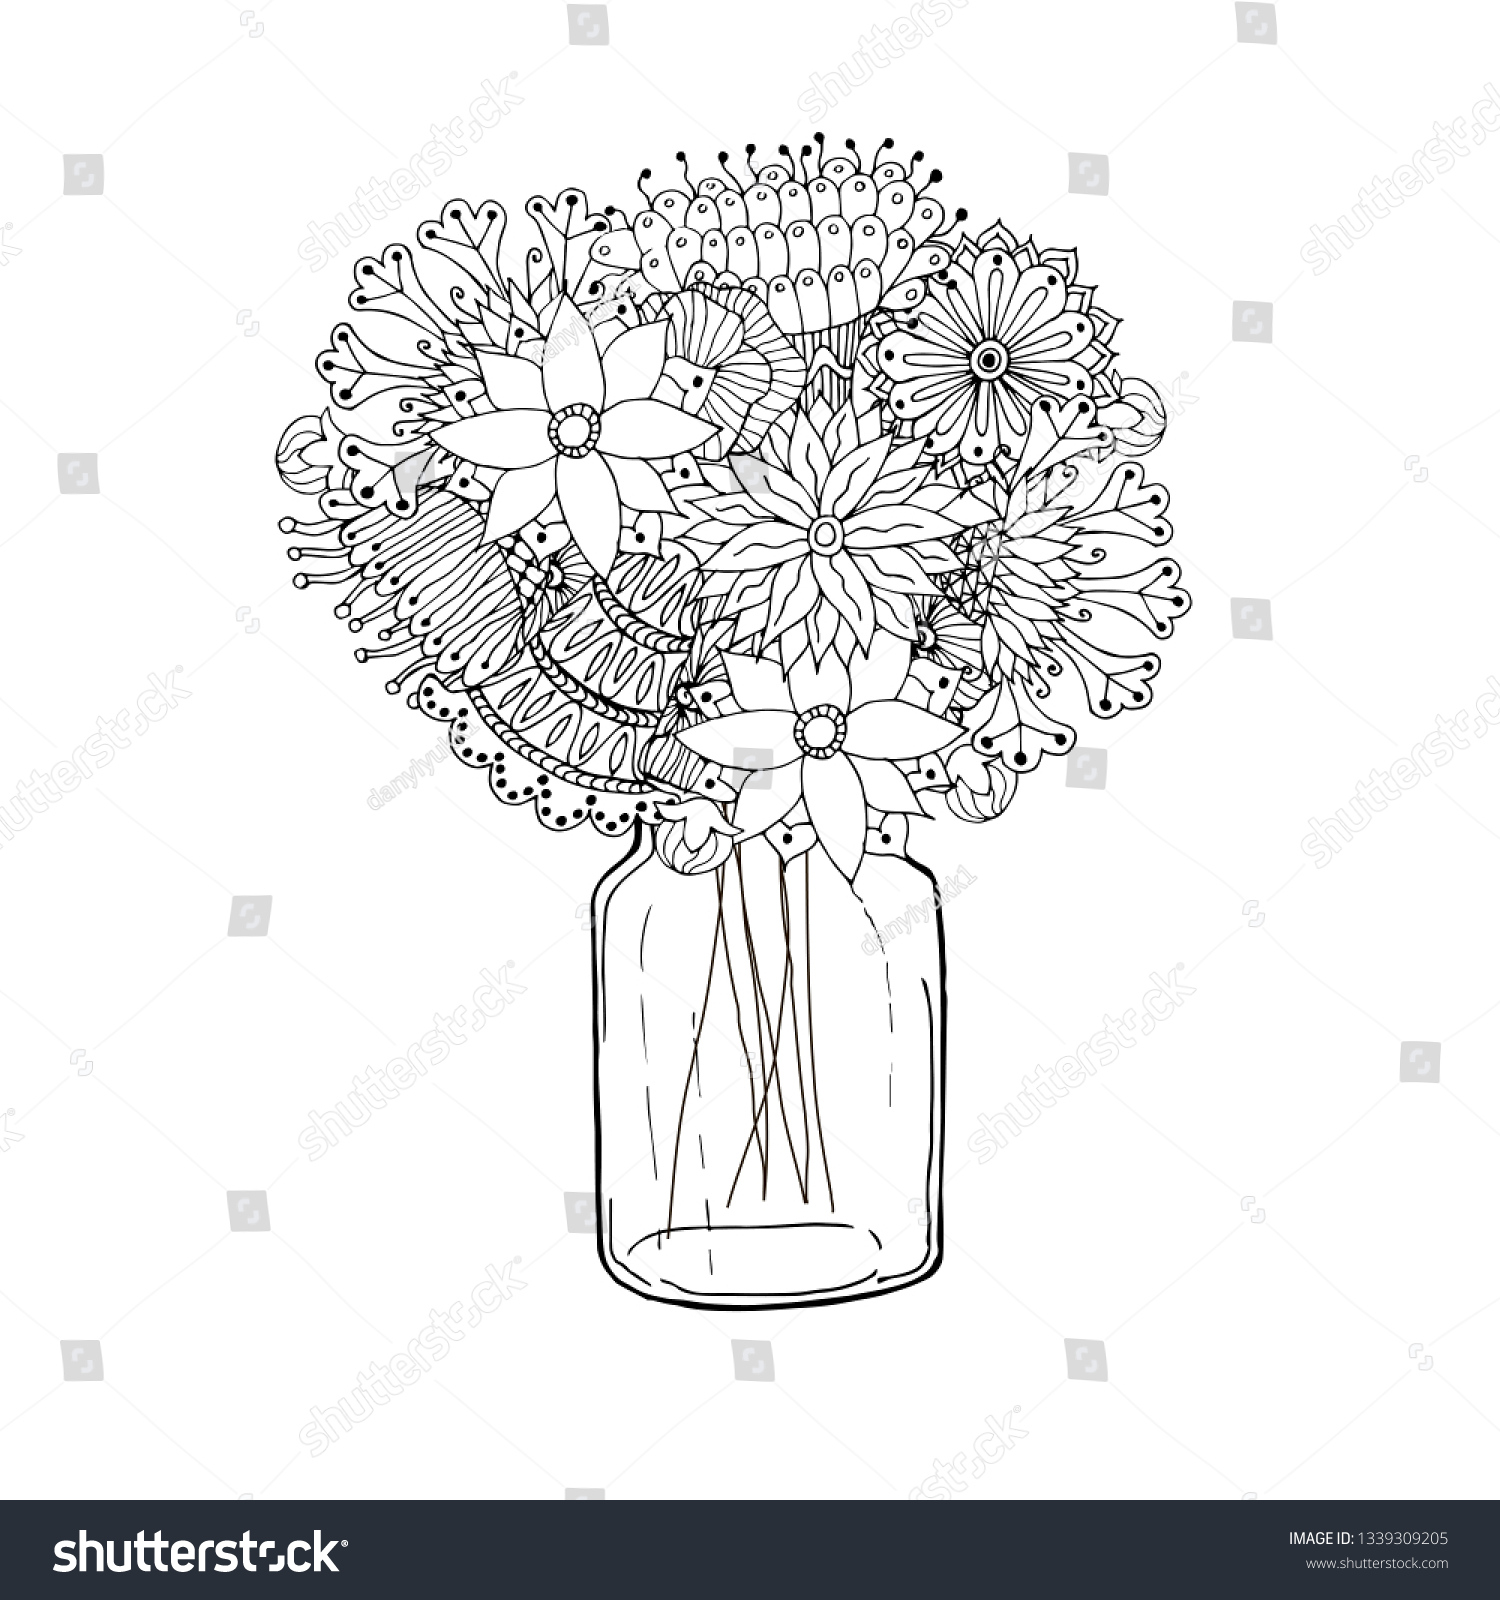 Free Coloring Page for Adults - Easy Peasy and Fun | 1600x1500